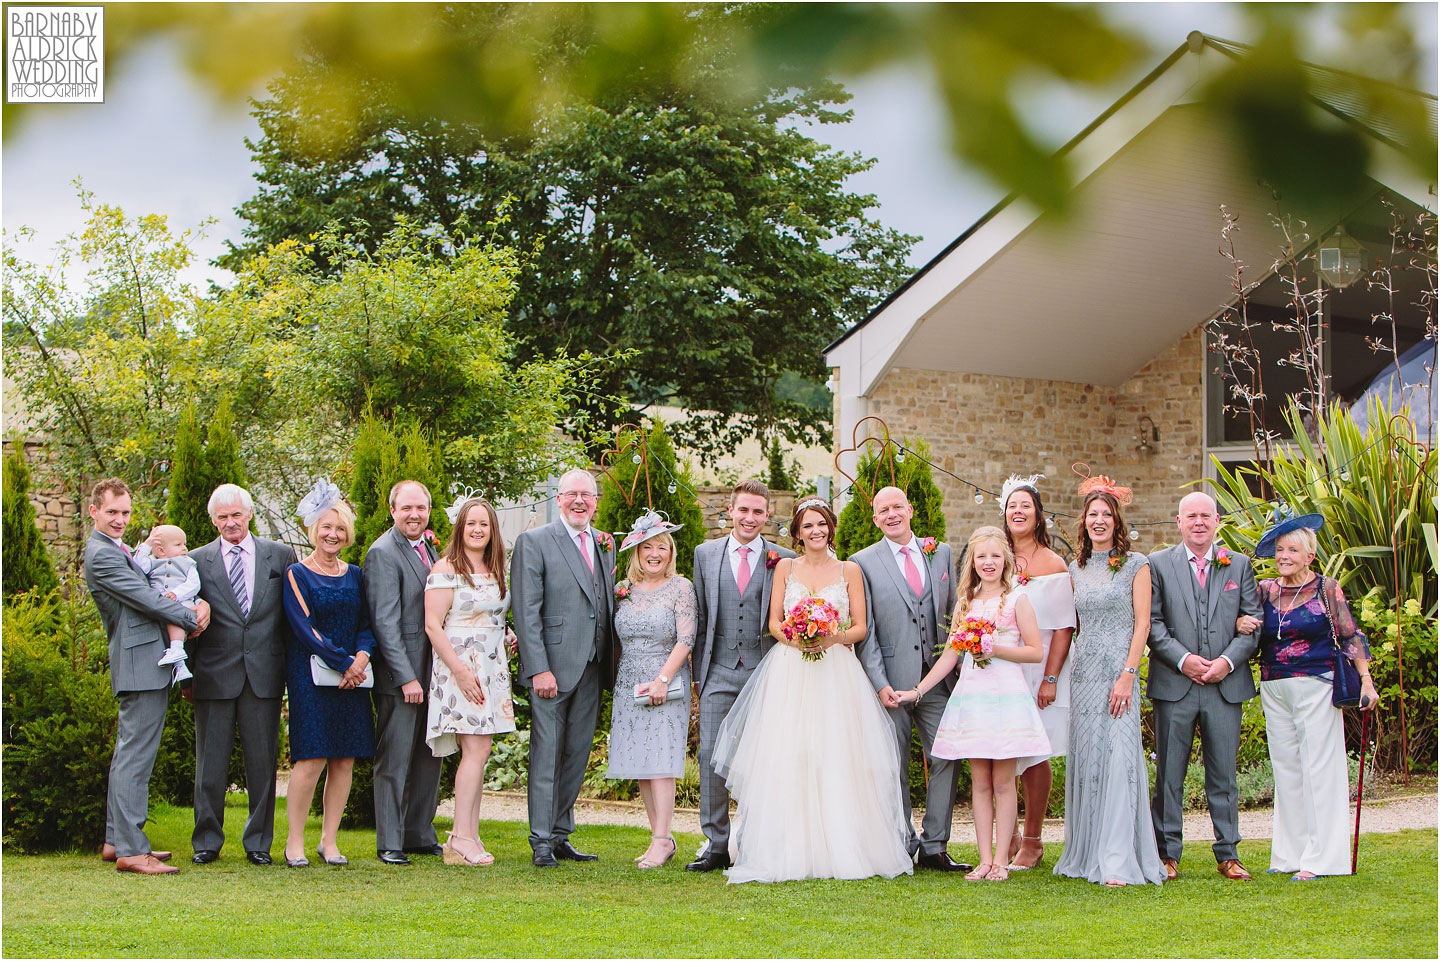 Family group photos at at Yorkshire Wedding Barn near Richmond